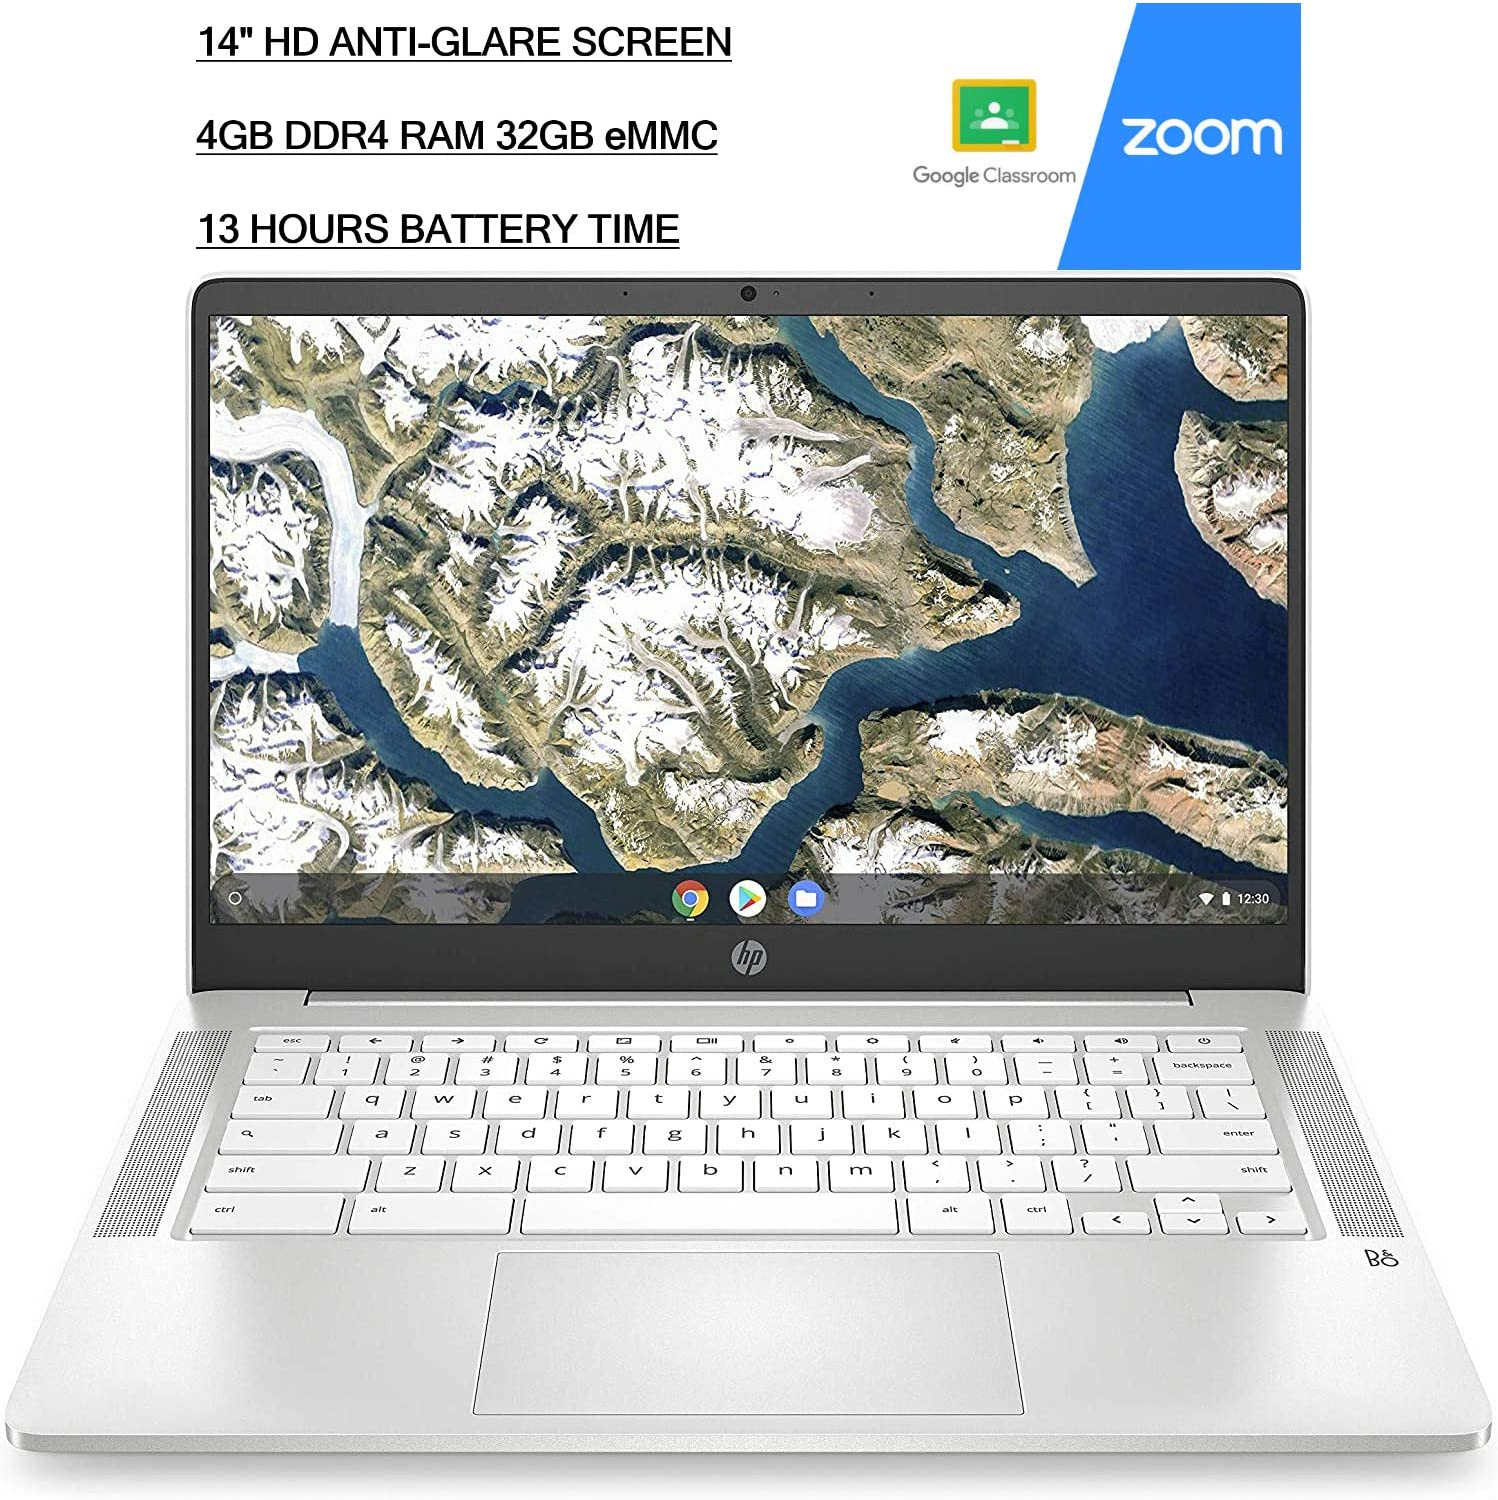 2020 Newest HP 14 inch HD Laptop Computer Chromebook|Intel Celeron N4020 (beat i3) upto 2.8GHz|4GB DDR4 RAM|32GB eMMC| 13h Battery|Google Classroom and Zoom Ready|VGSION Preinstalled Chrome OS, Silver